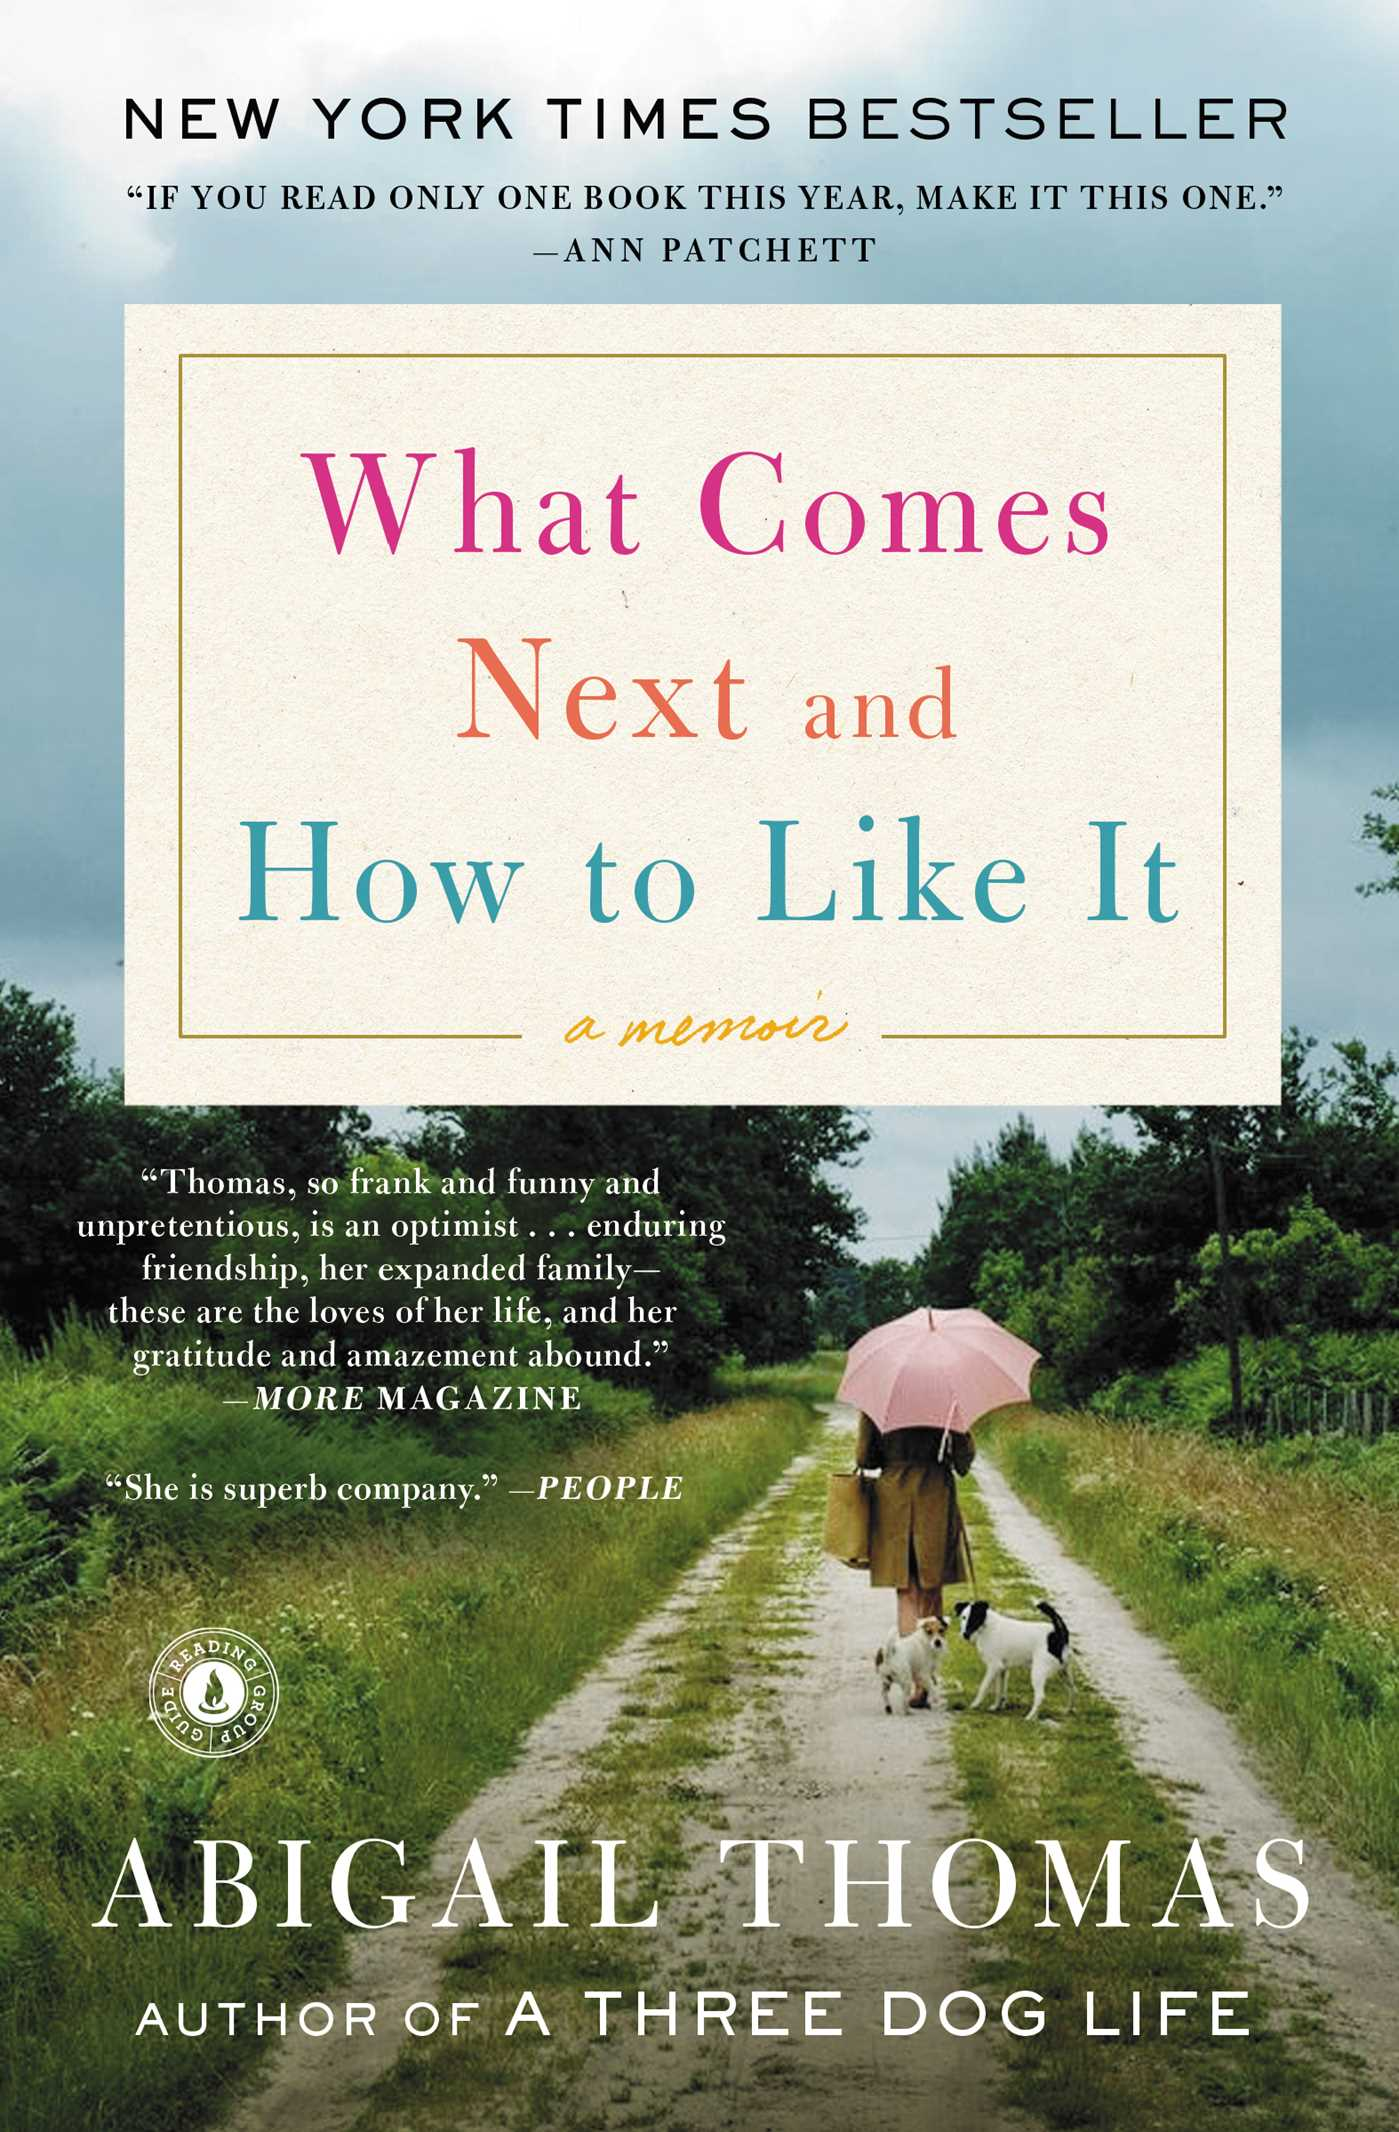 What comes next and how to like it 9781476785073 hr